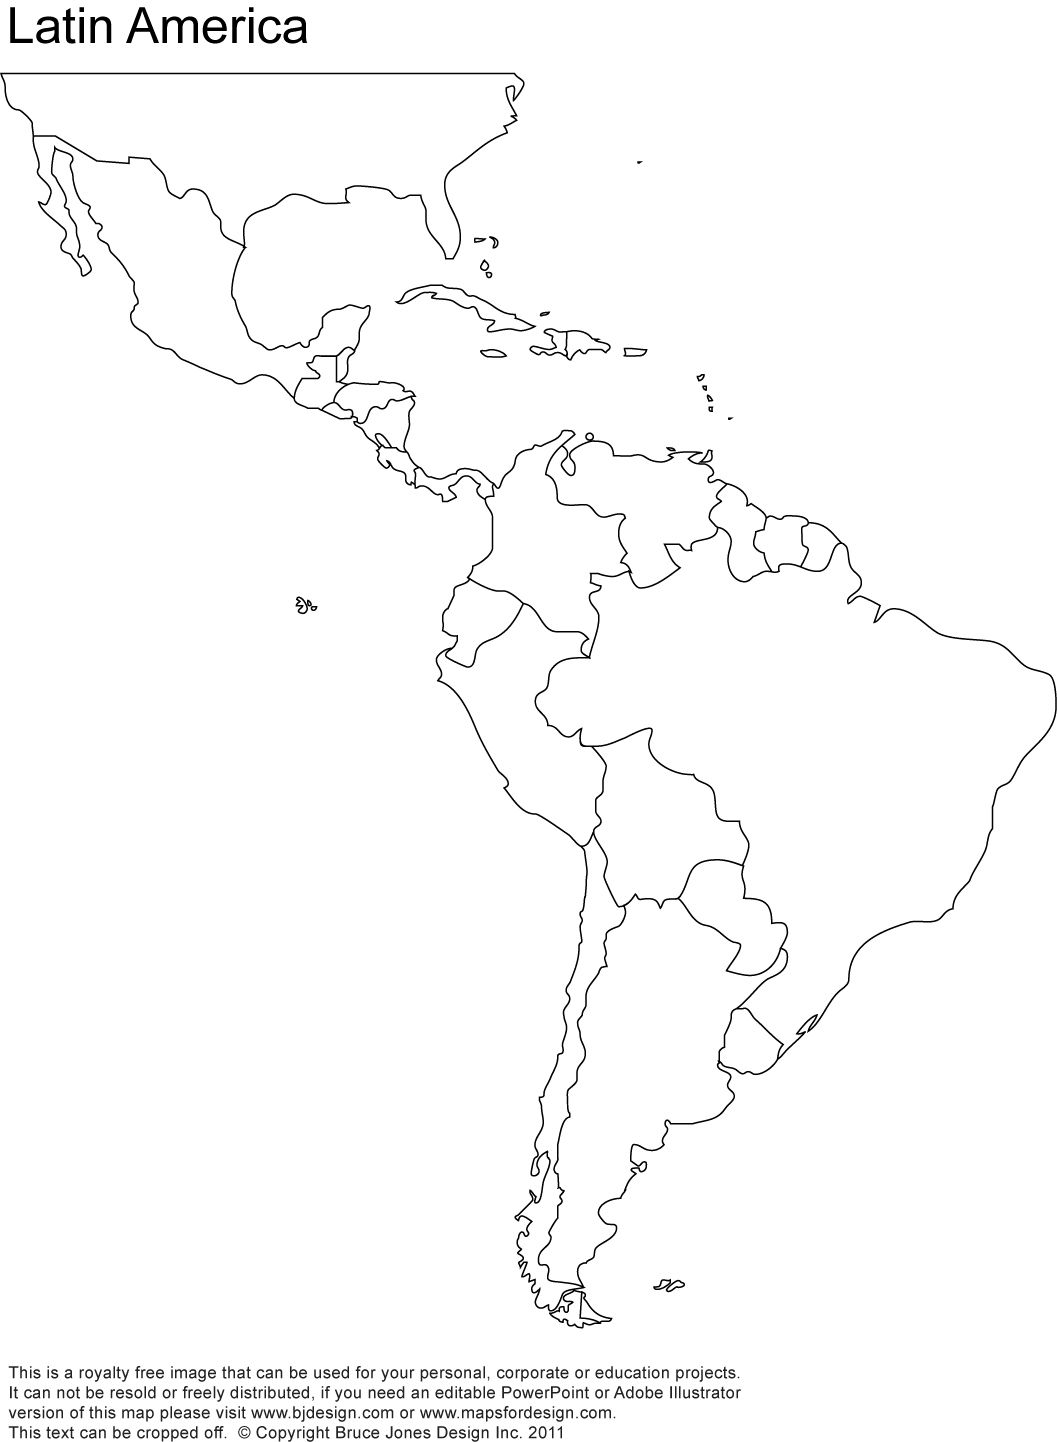 Free Blank Map Of North And South America Latin America - Map of central america blank